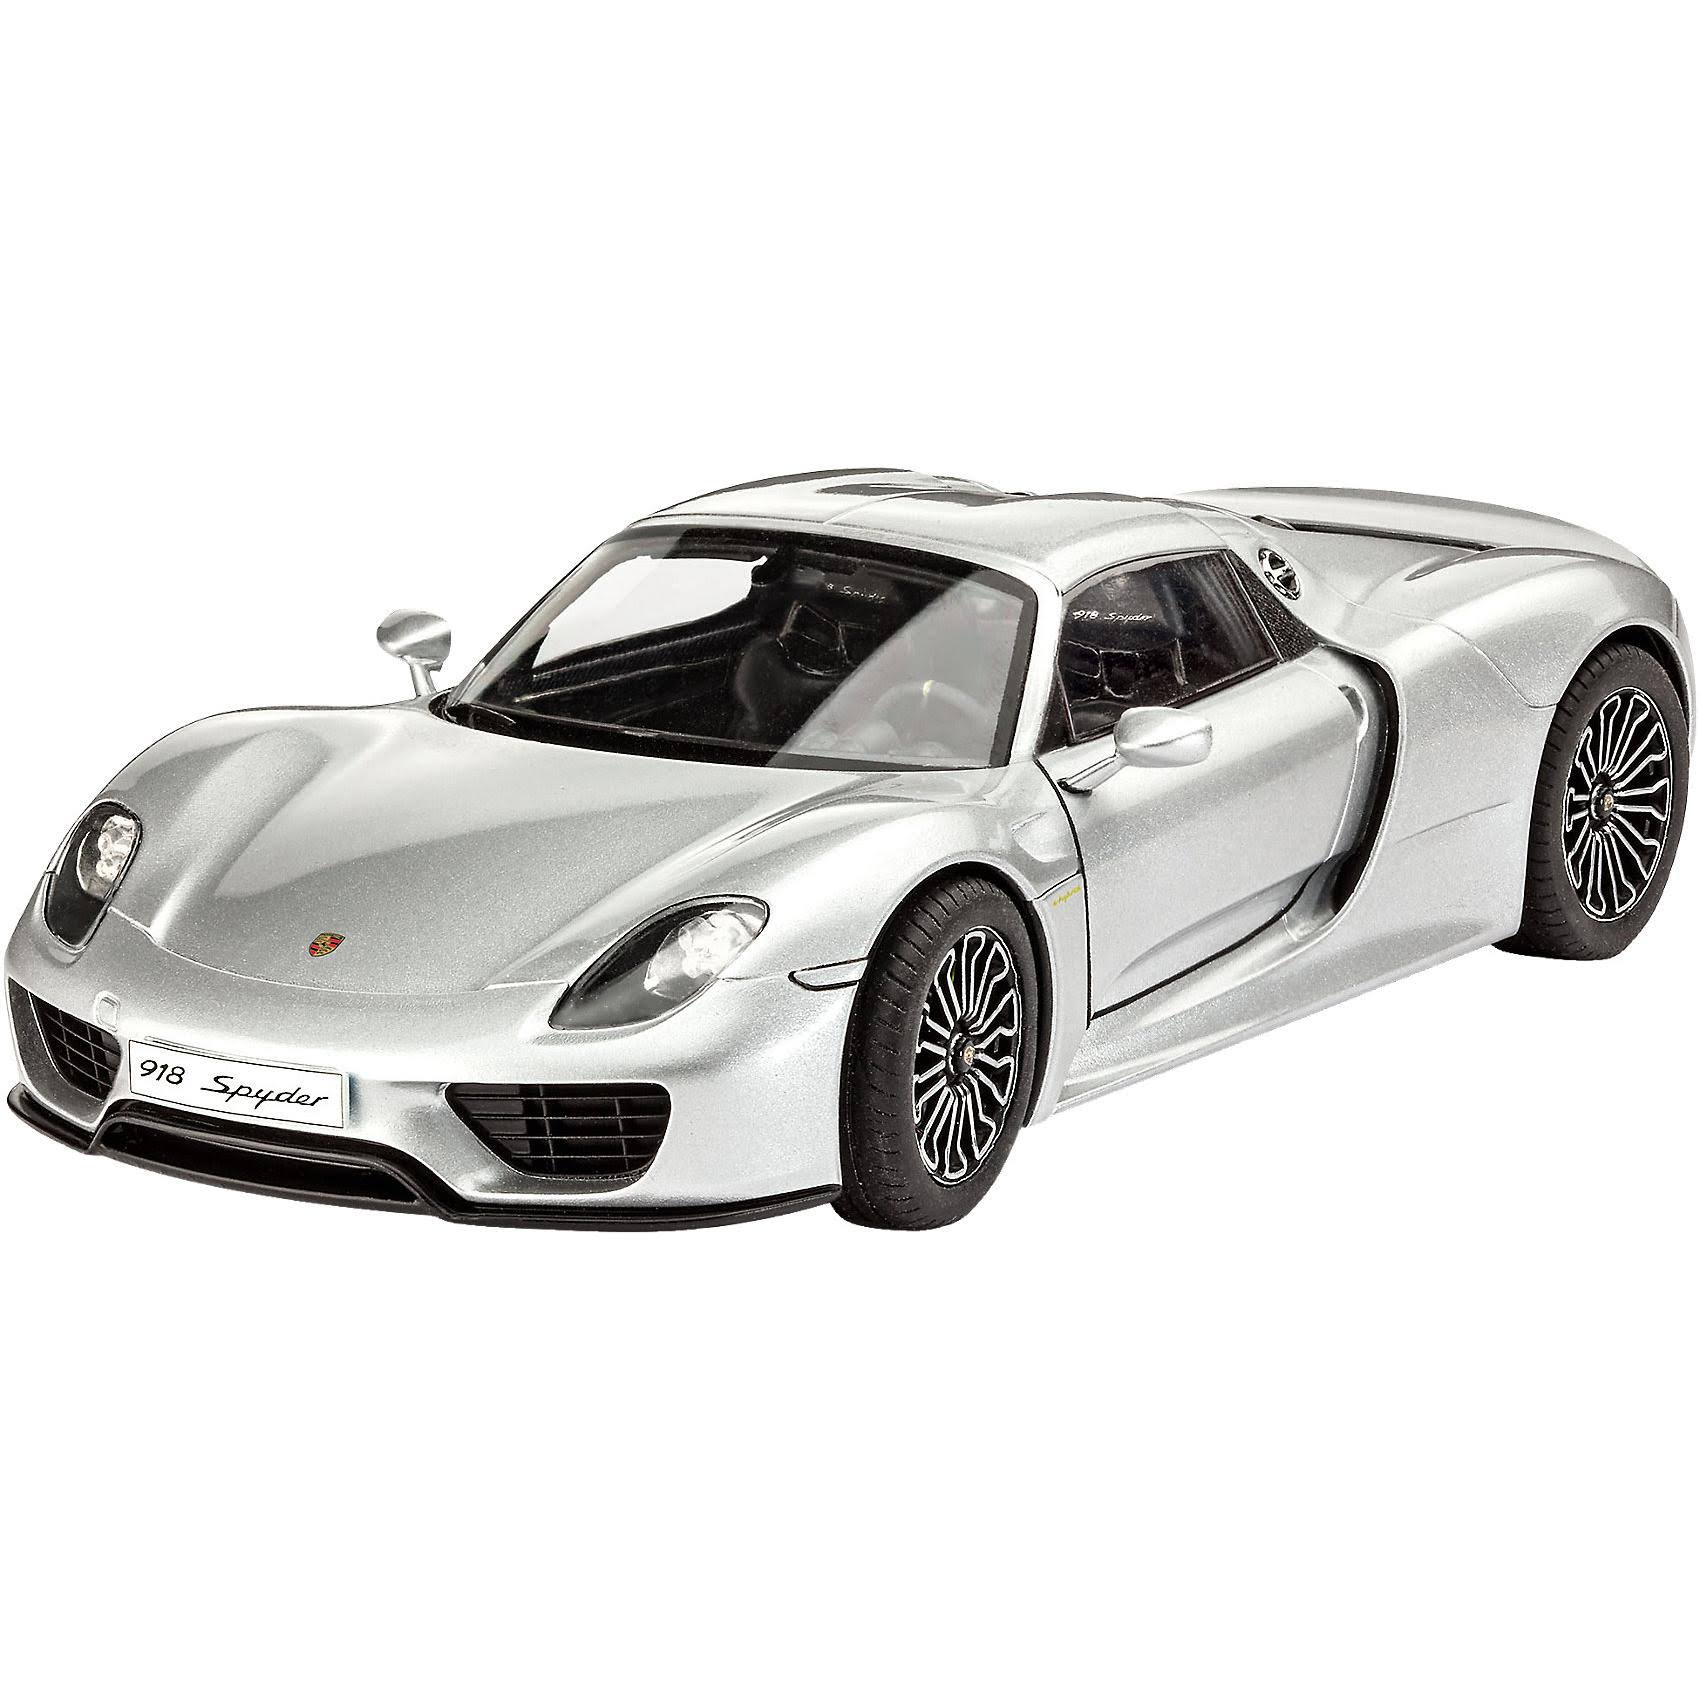 Revell Porsche 918 Spyder Model Kit - 1:24 Scale